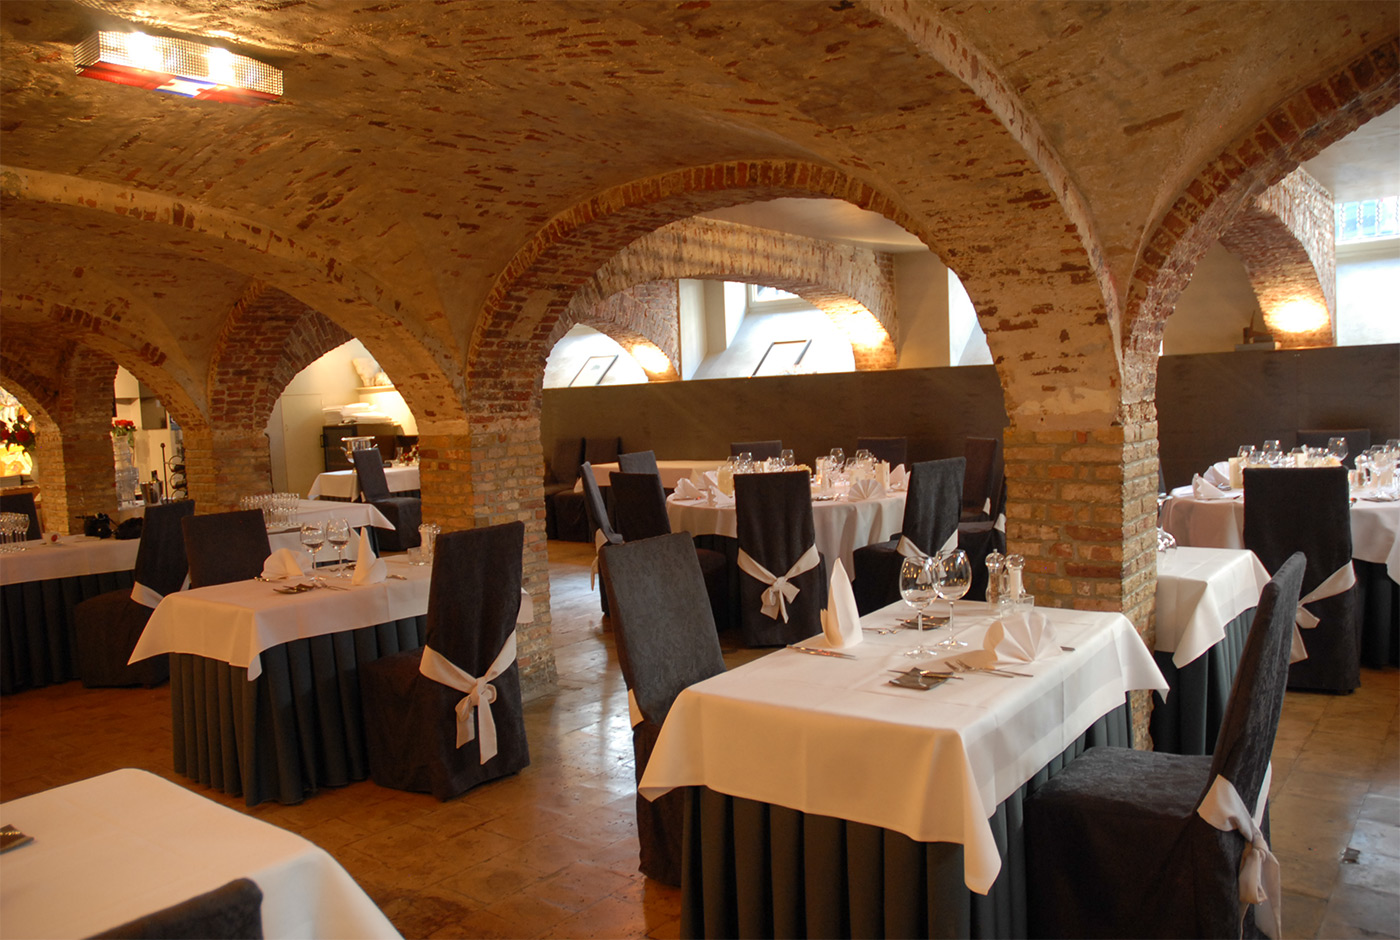 Home restaurant de bocarme brugge for Home restaurant